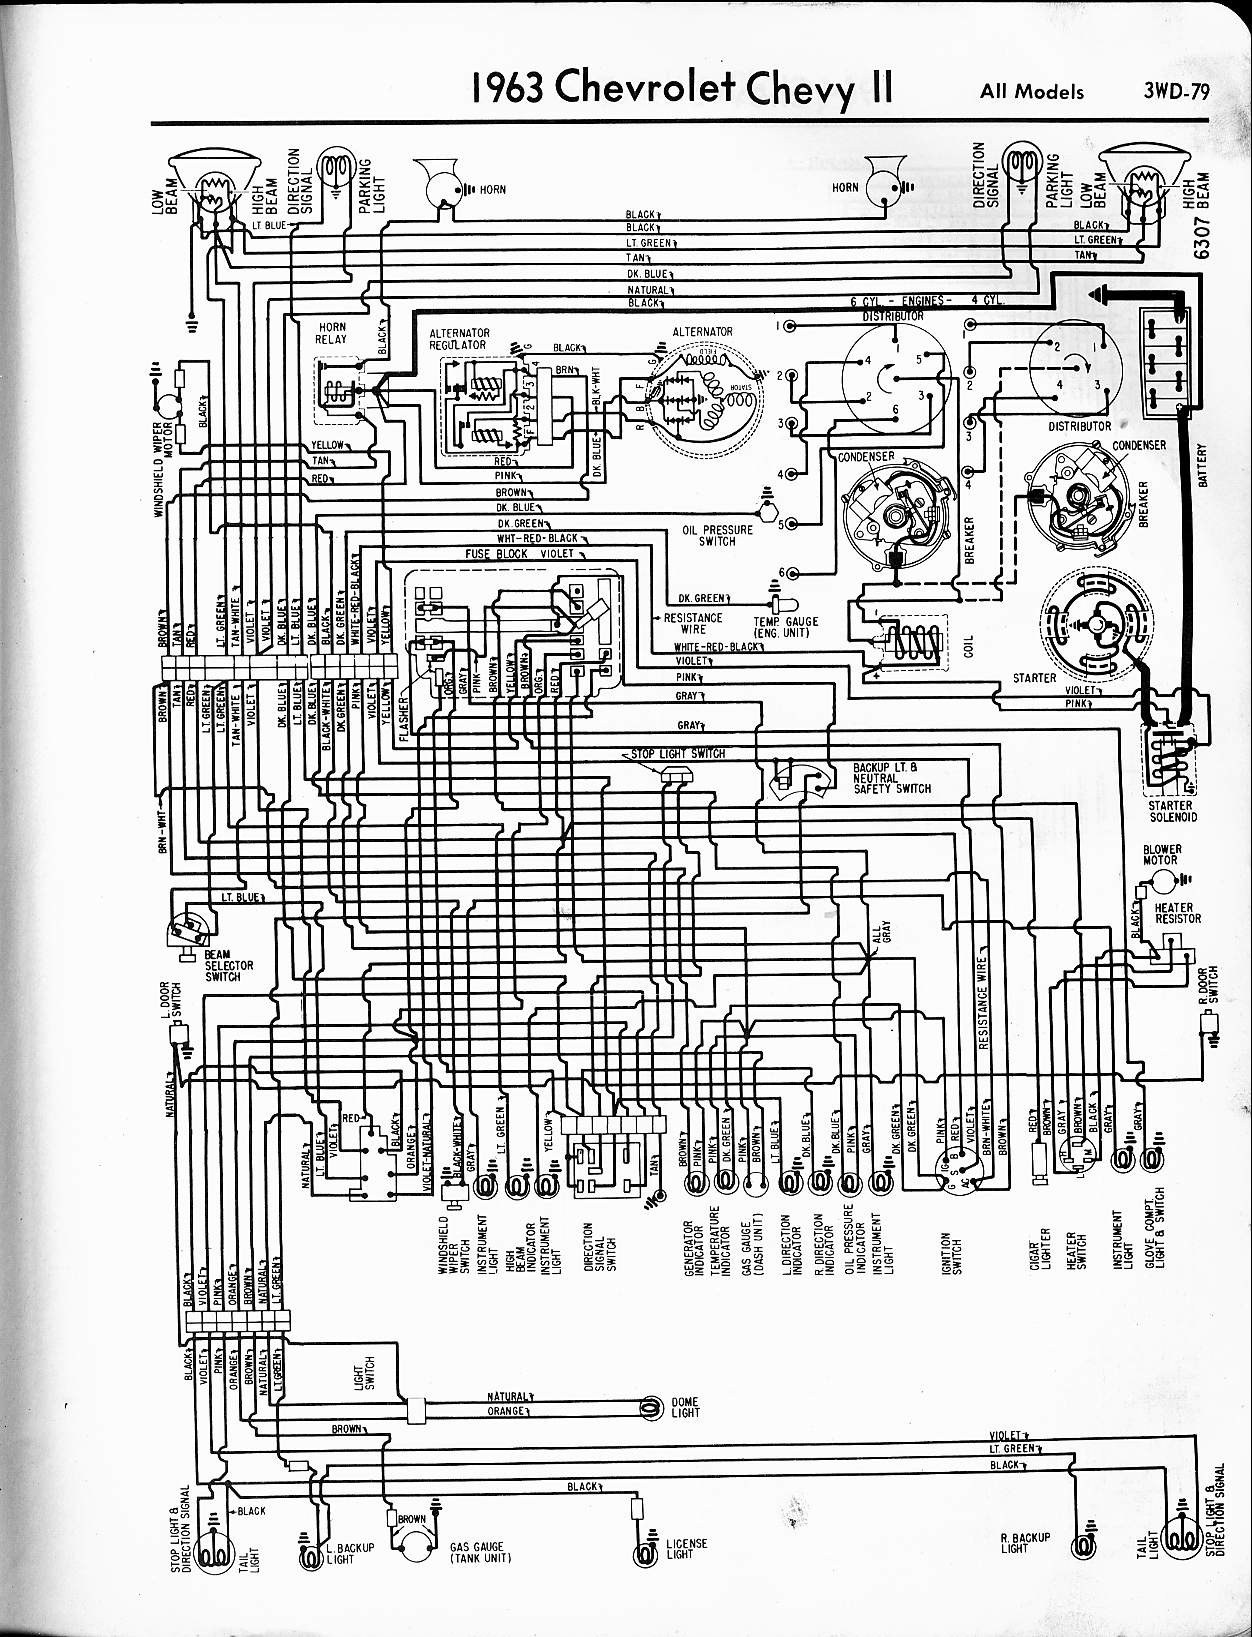 1993 Chey S 10 Headlight Wiring Diagram Wiring 1993 Chevrolet Wiring Diagram Picture Schematic Full Of 1993 Chey S 10 Headlight Wiring Diagram